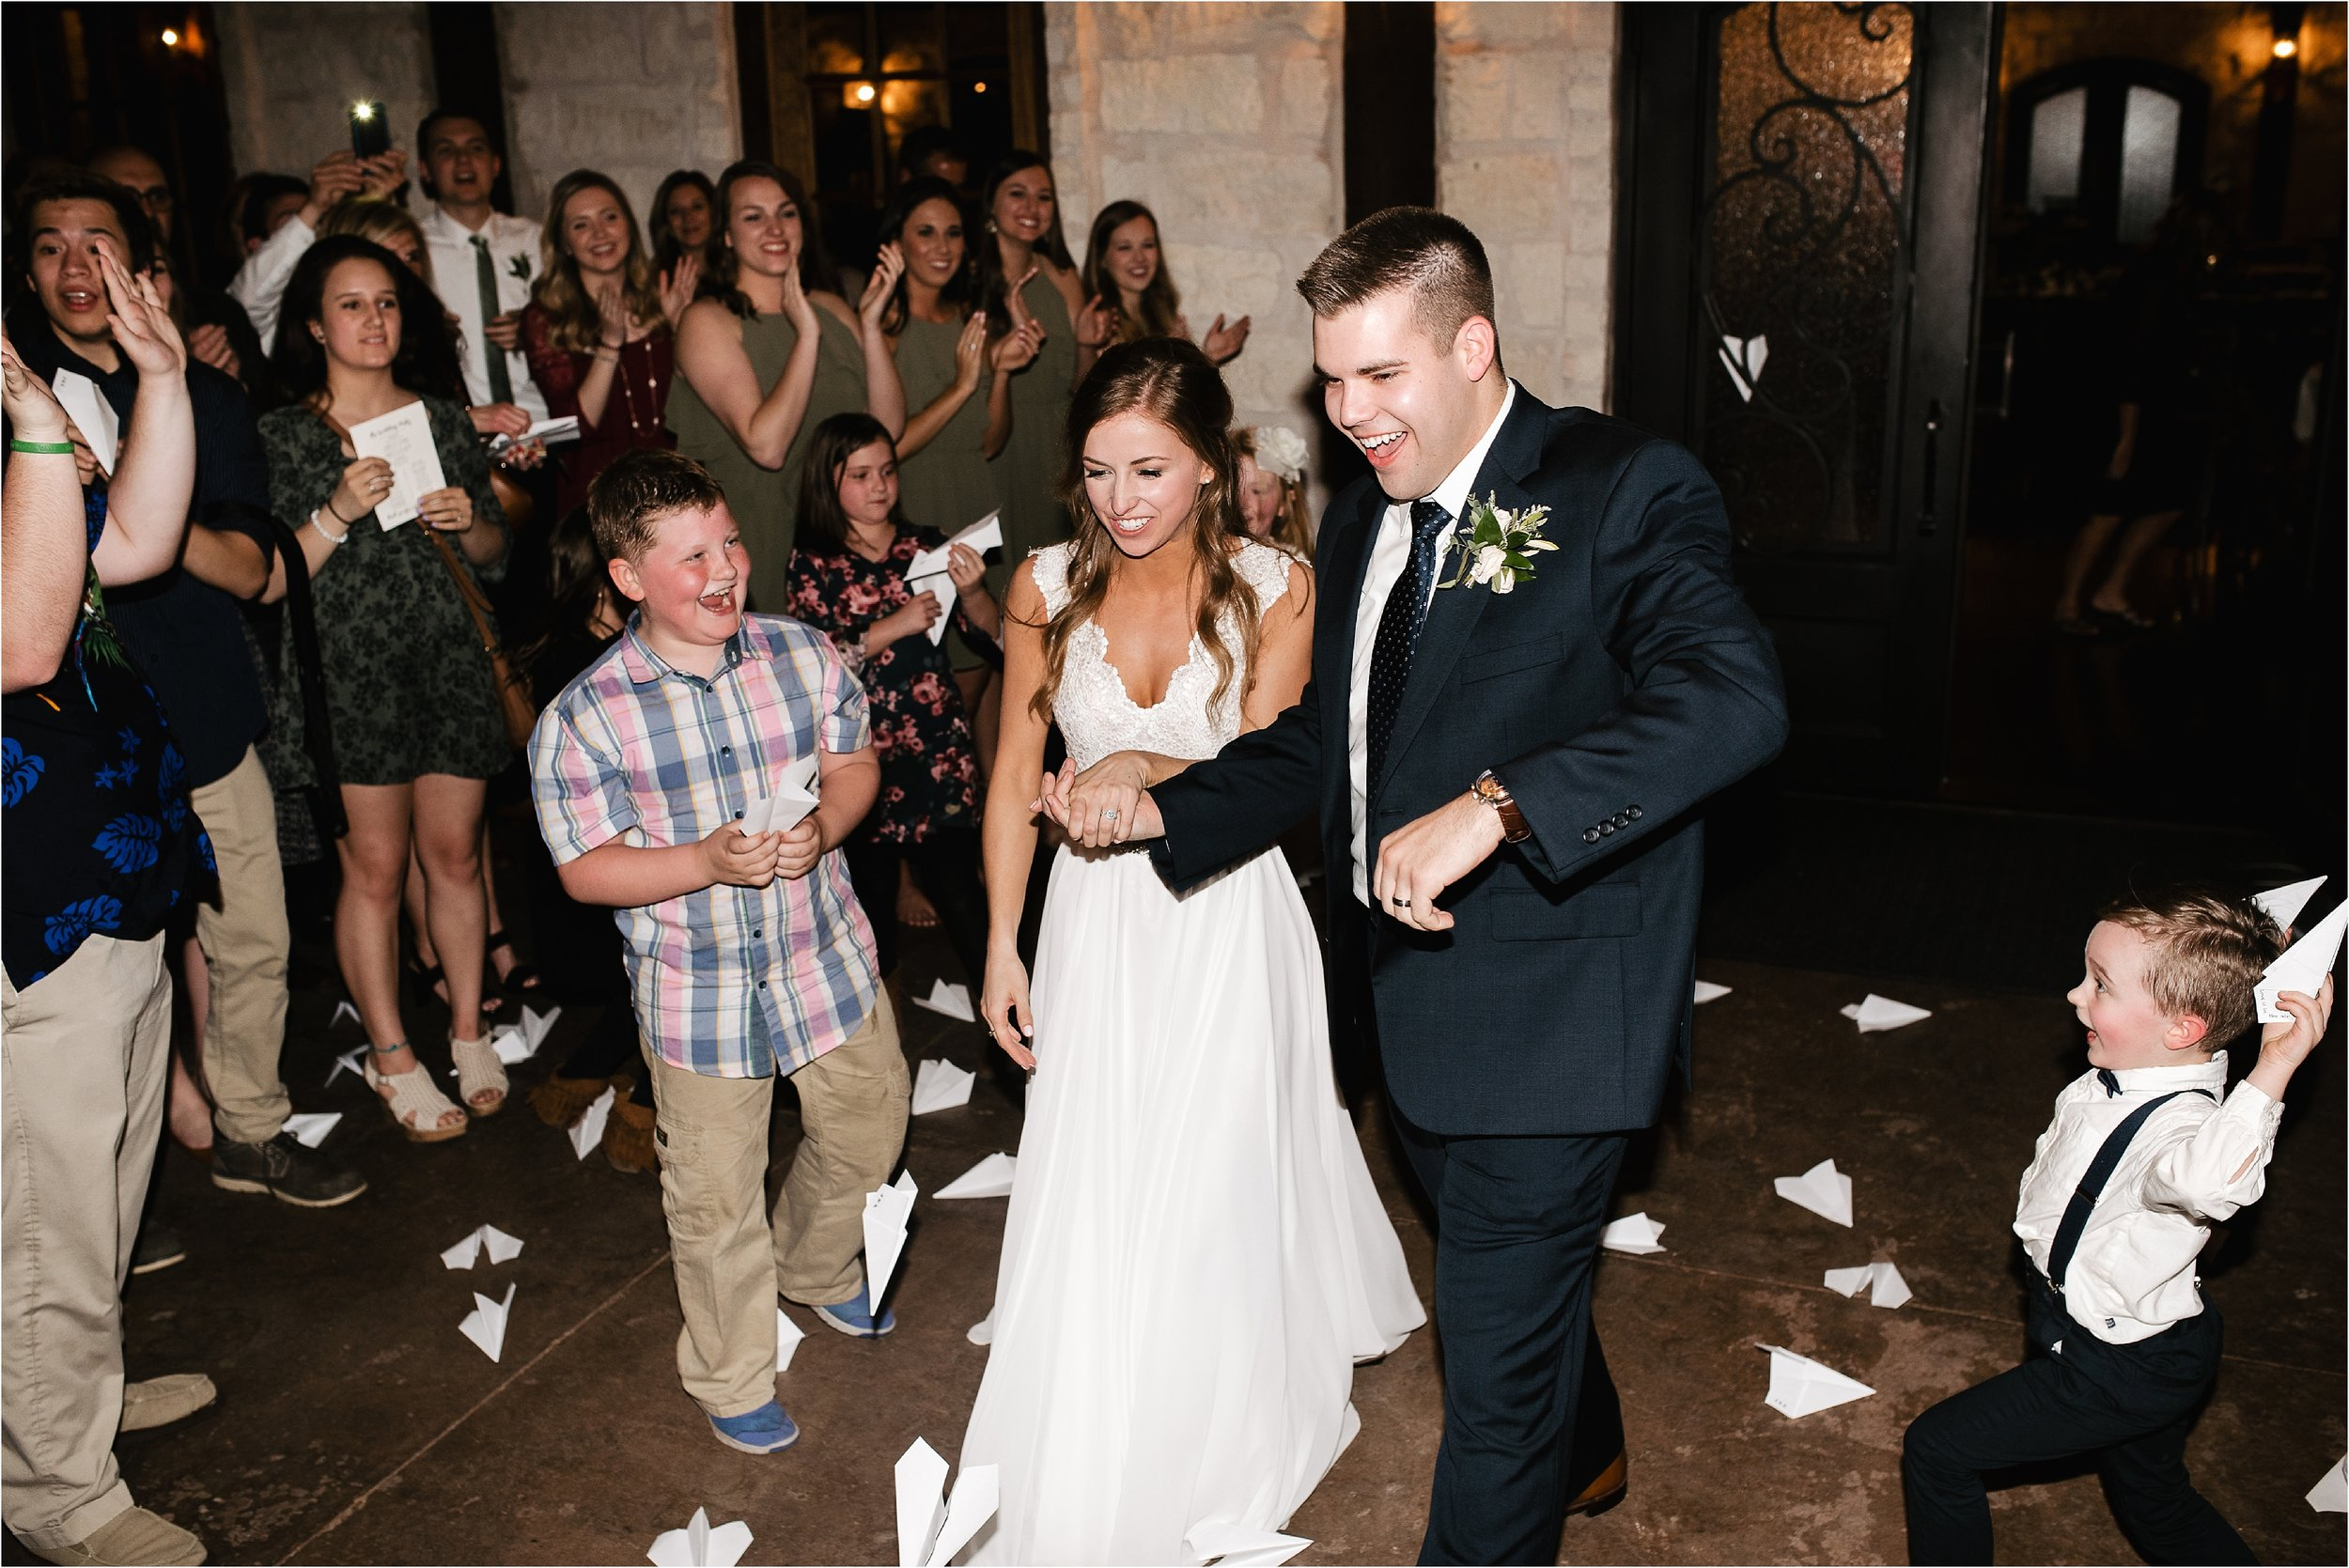 oklahoma wedding photographer reception family friends hugs congratulations best wishes exit paper planes the springs norman okc